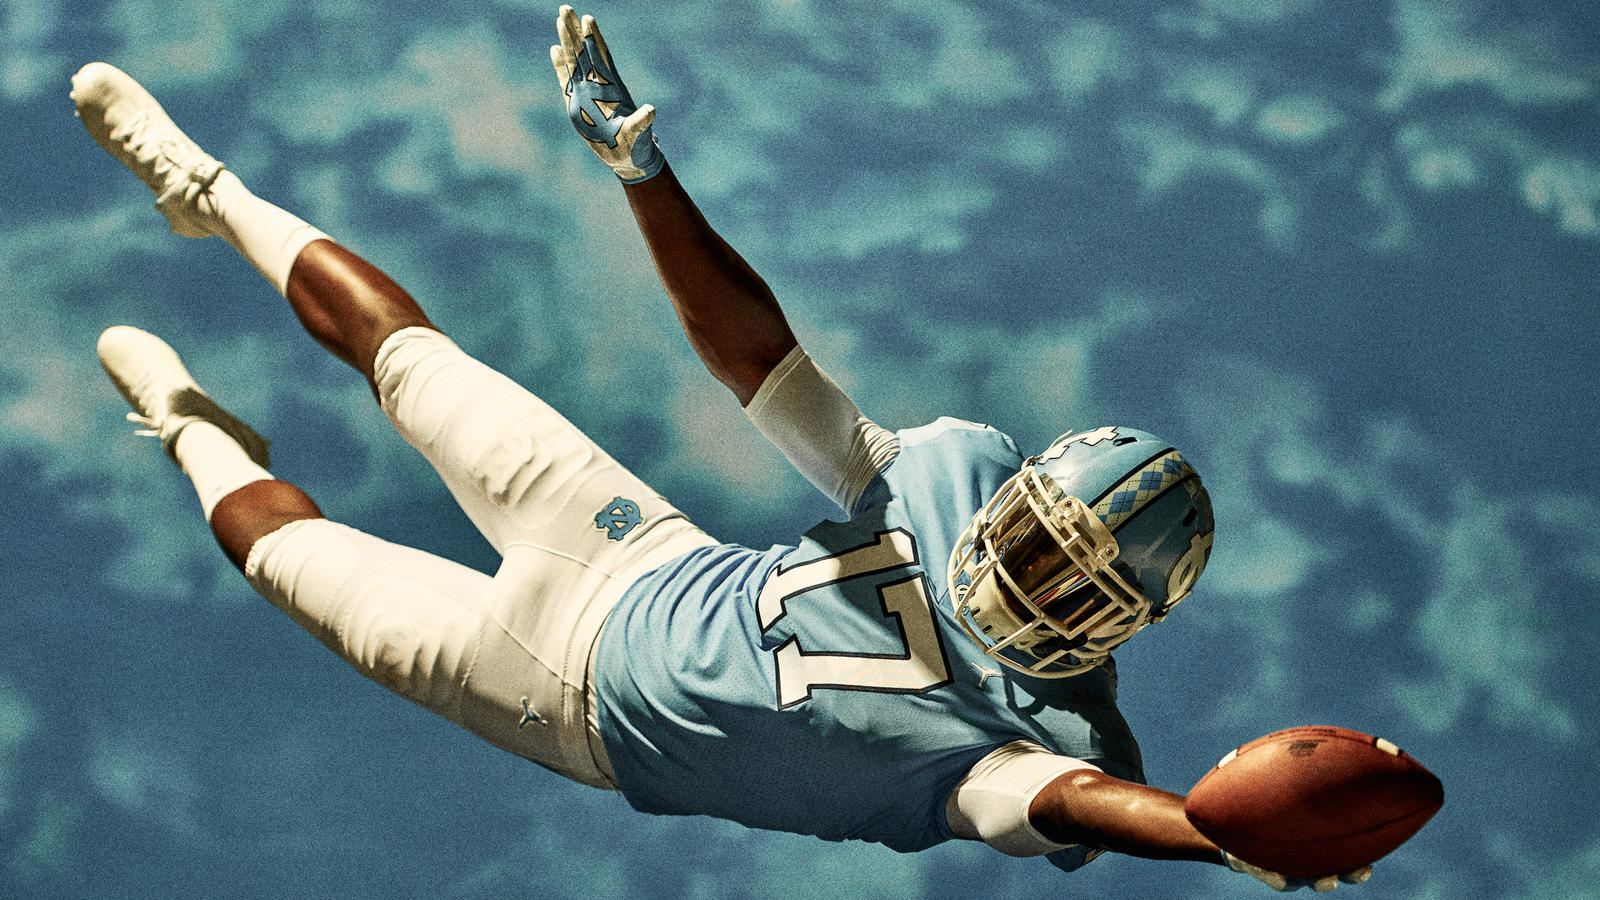 Jordan Brand Reveals the University of North Carolina Football Uniforms  2